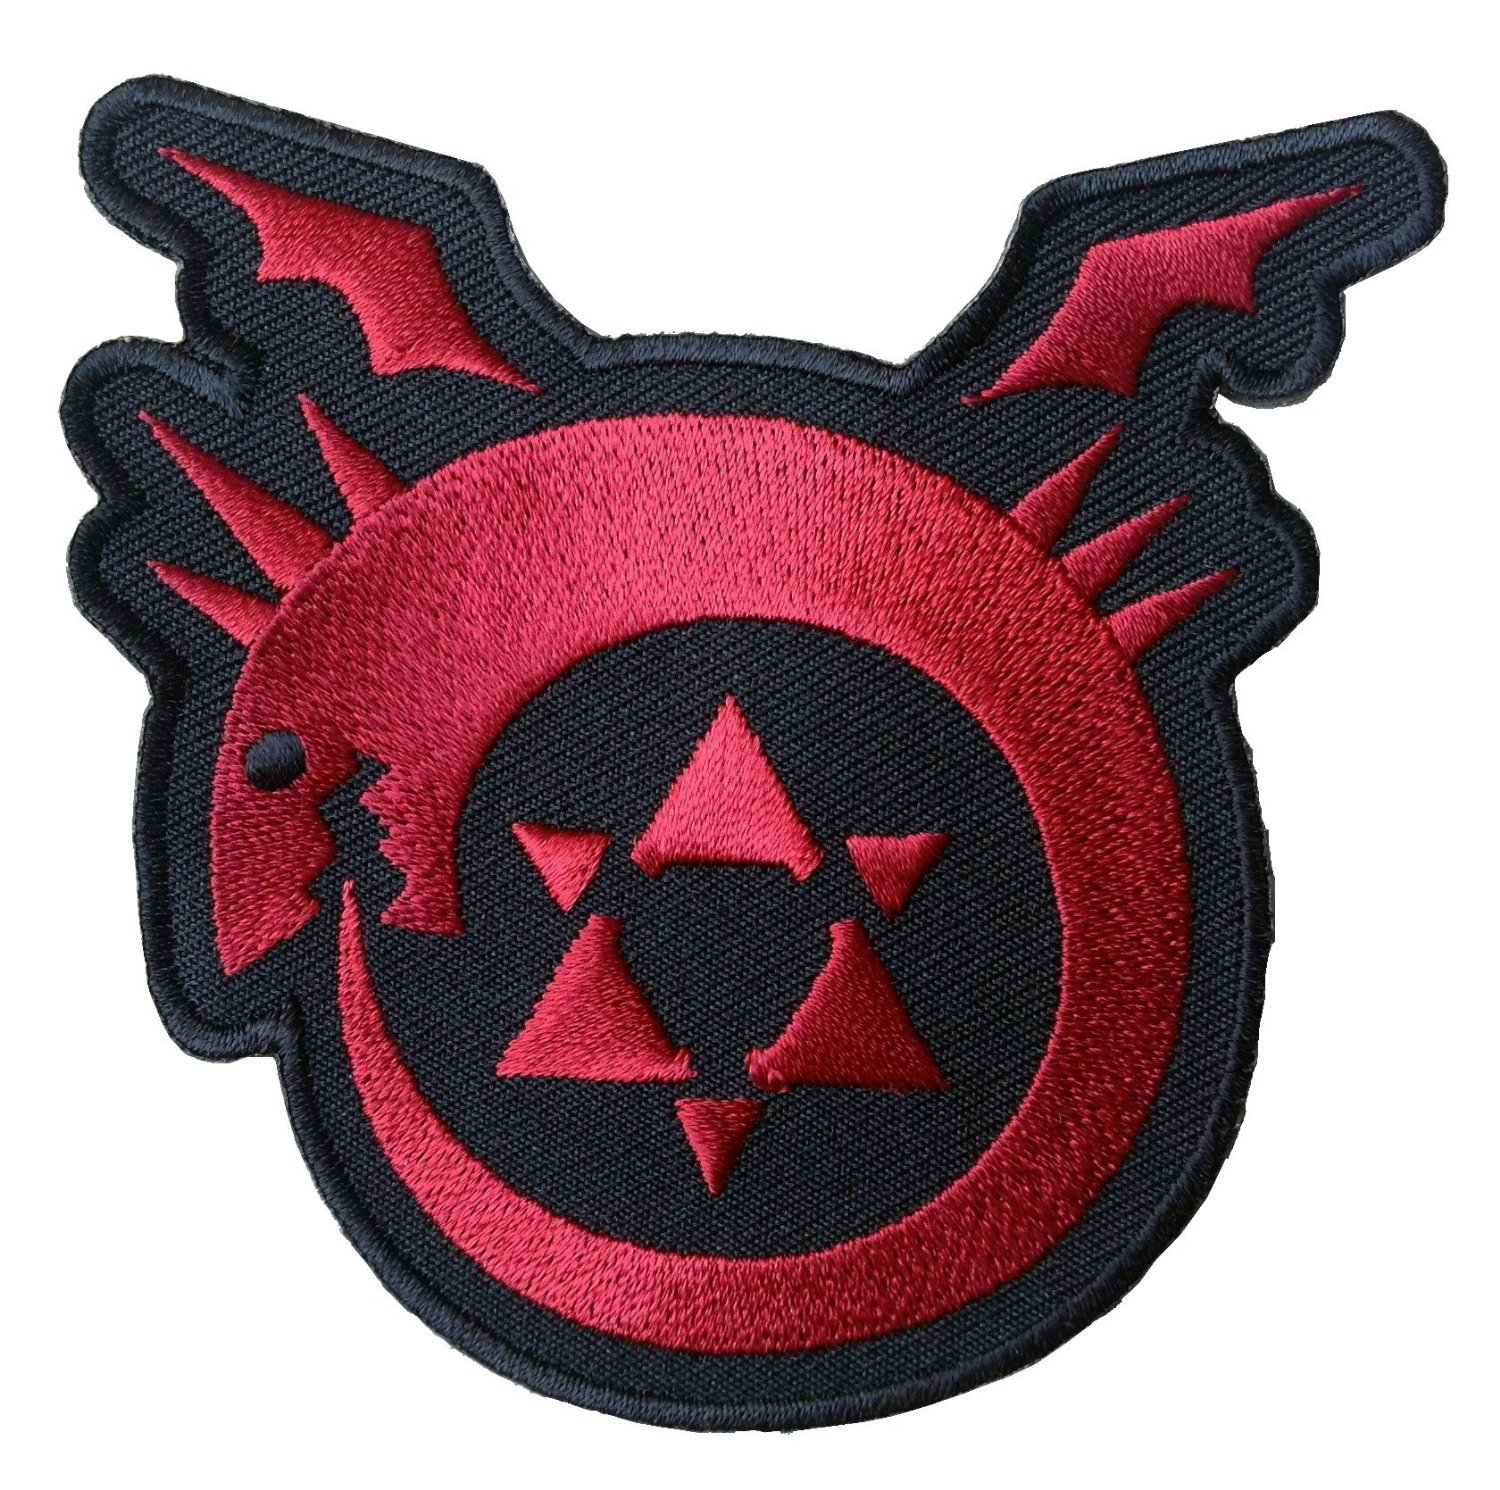 Hook Fastener Full Metal Alchemist Brotherhood Uroboros Logo Patch By Titan One Europe